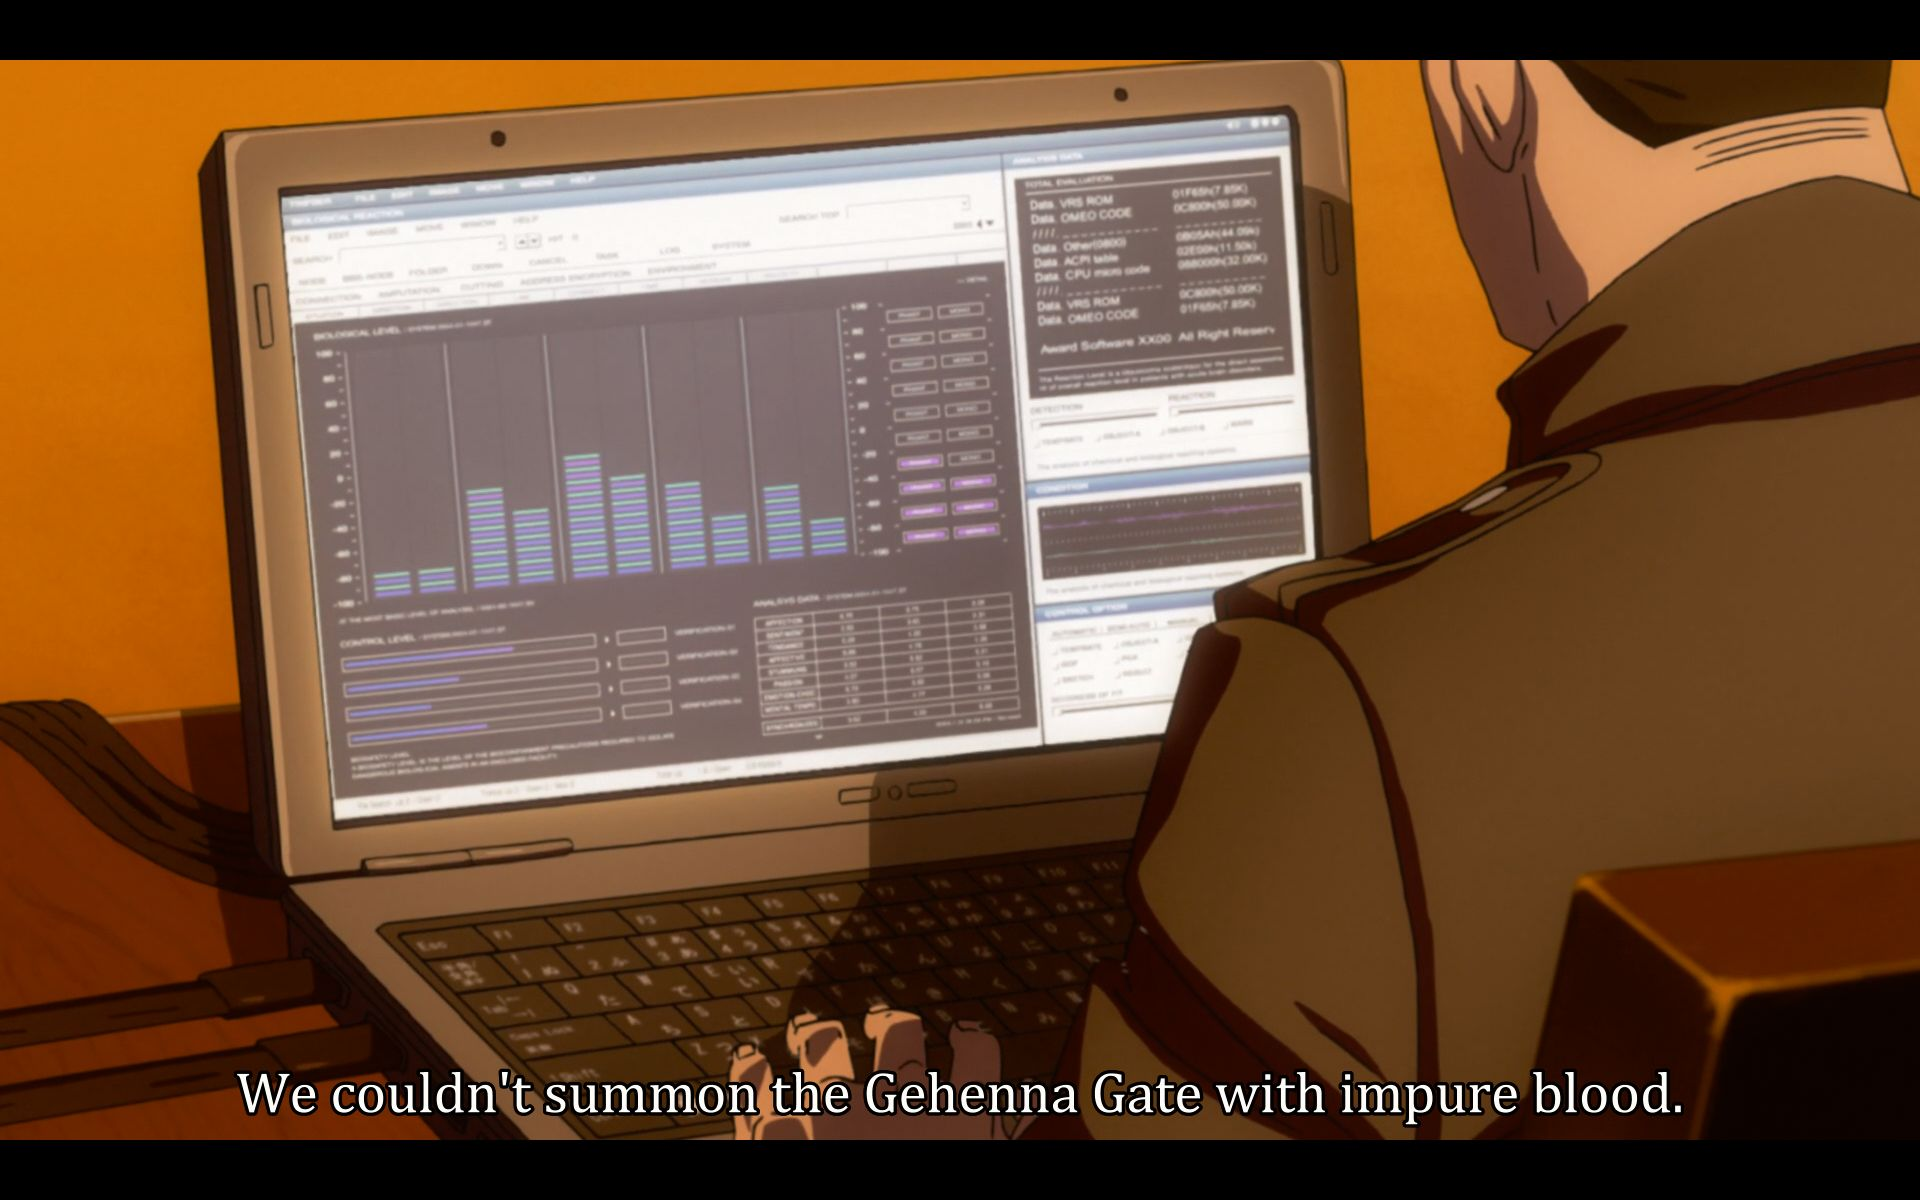 What does this program has anything to do with opening the gate to Hell?